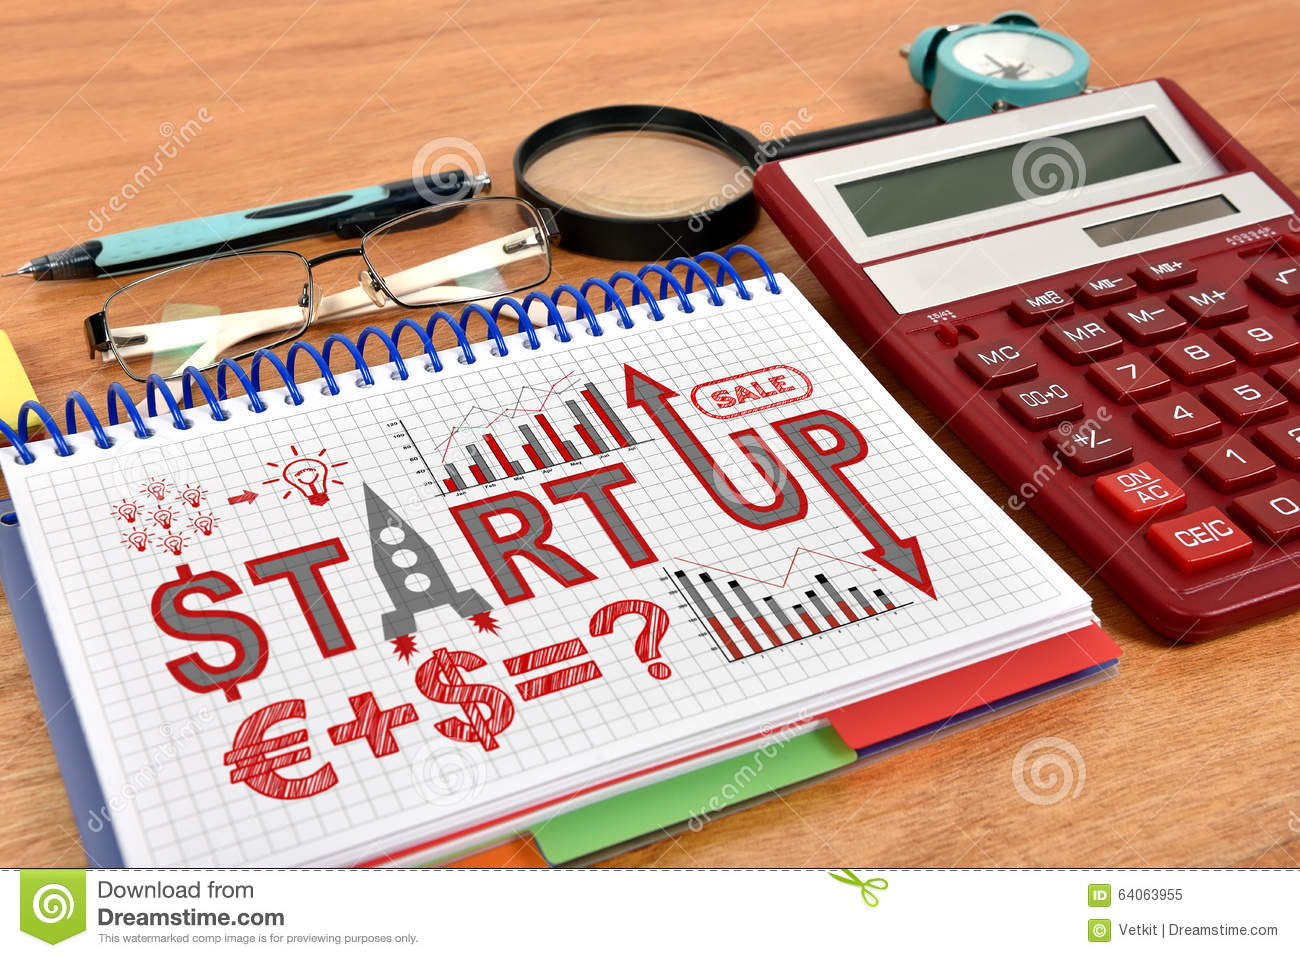 start up business calculator